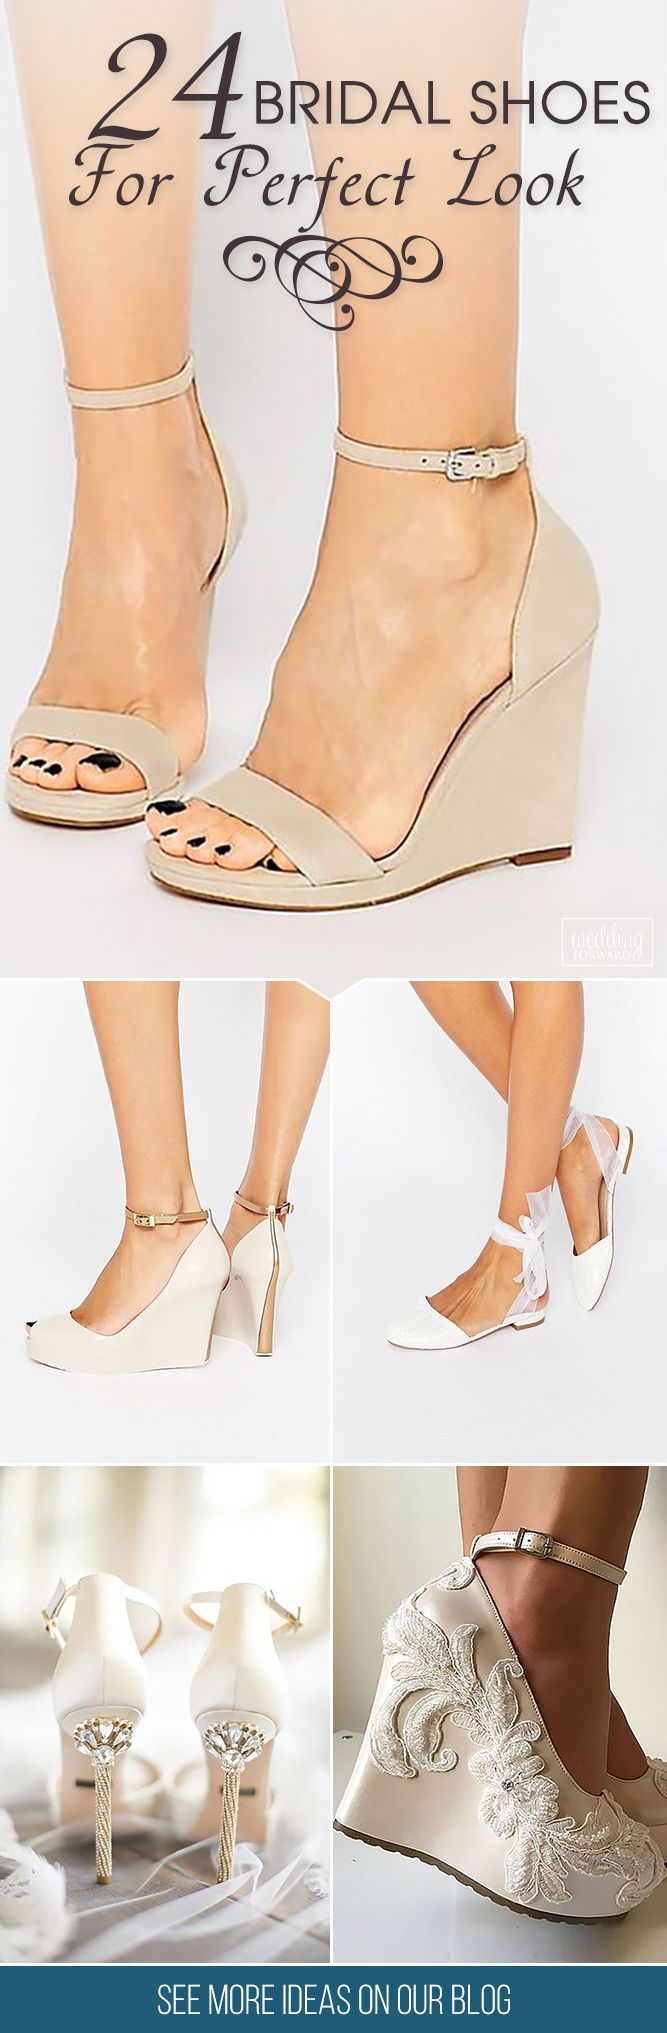 bridal shoes best wedding shoes 24 Gorgeous Bridal Shoes For Stunning Brides When you have already picked the right dress